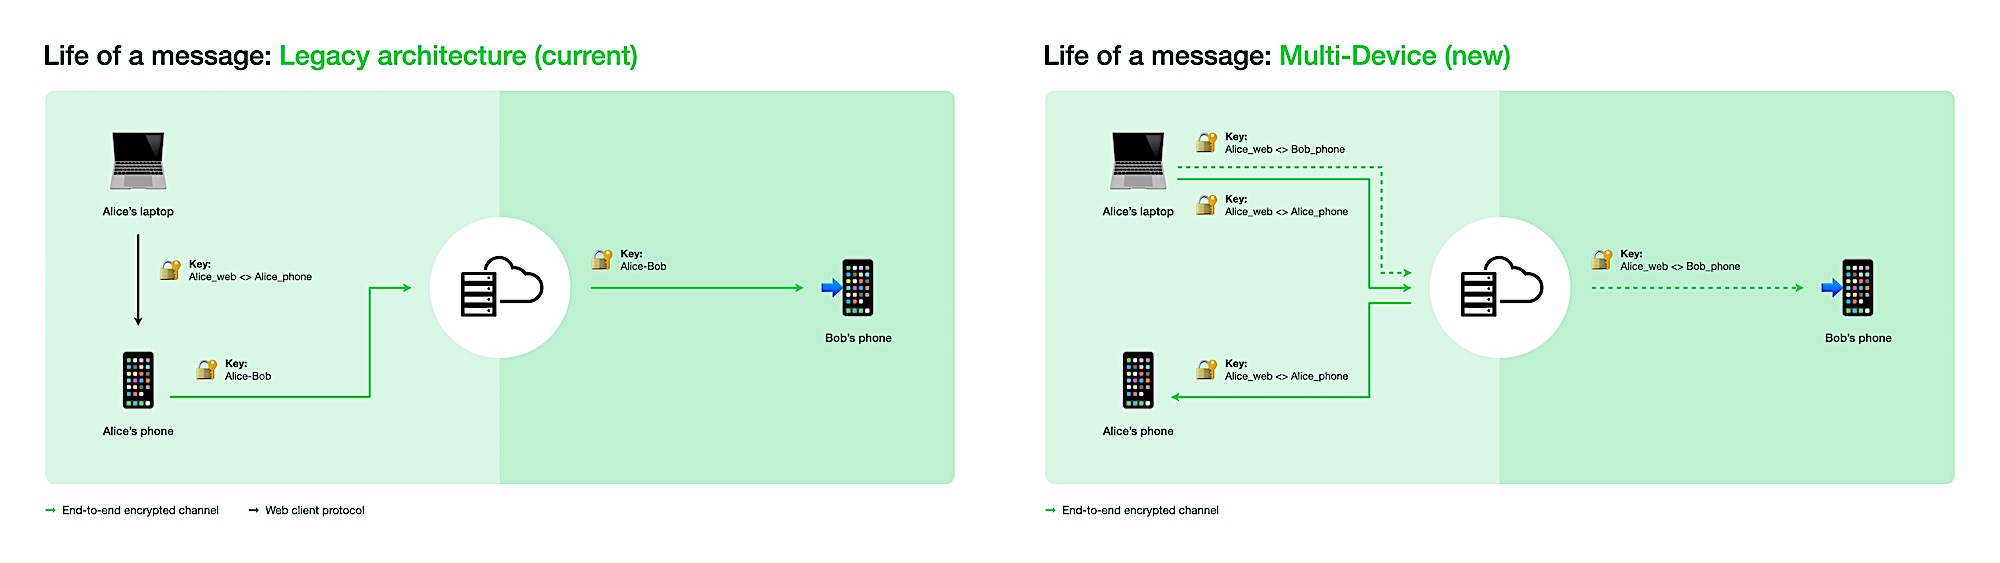 WhatsApp is testing multi-device support that works without the phone